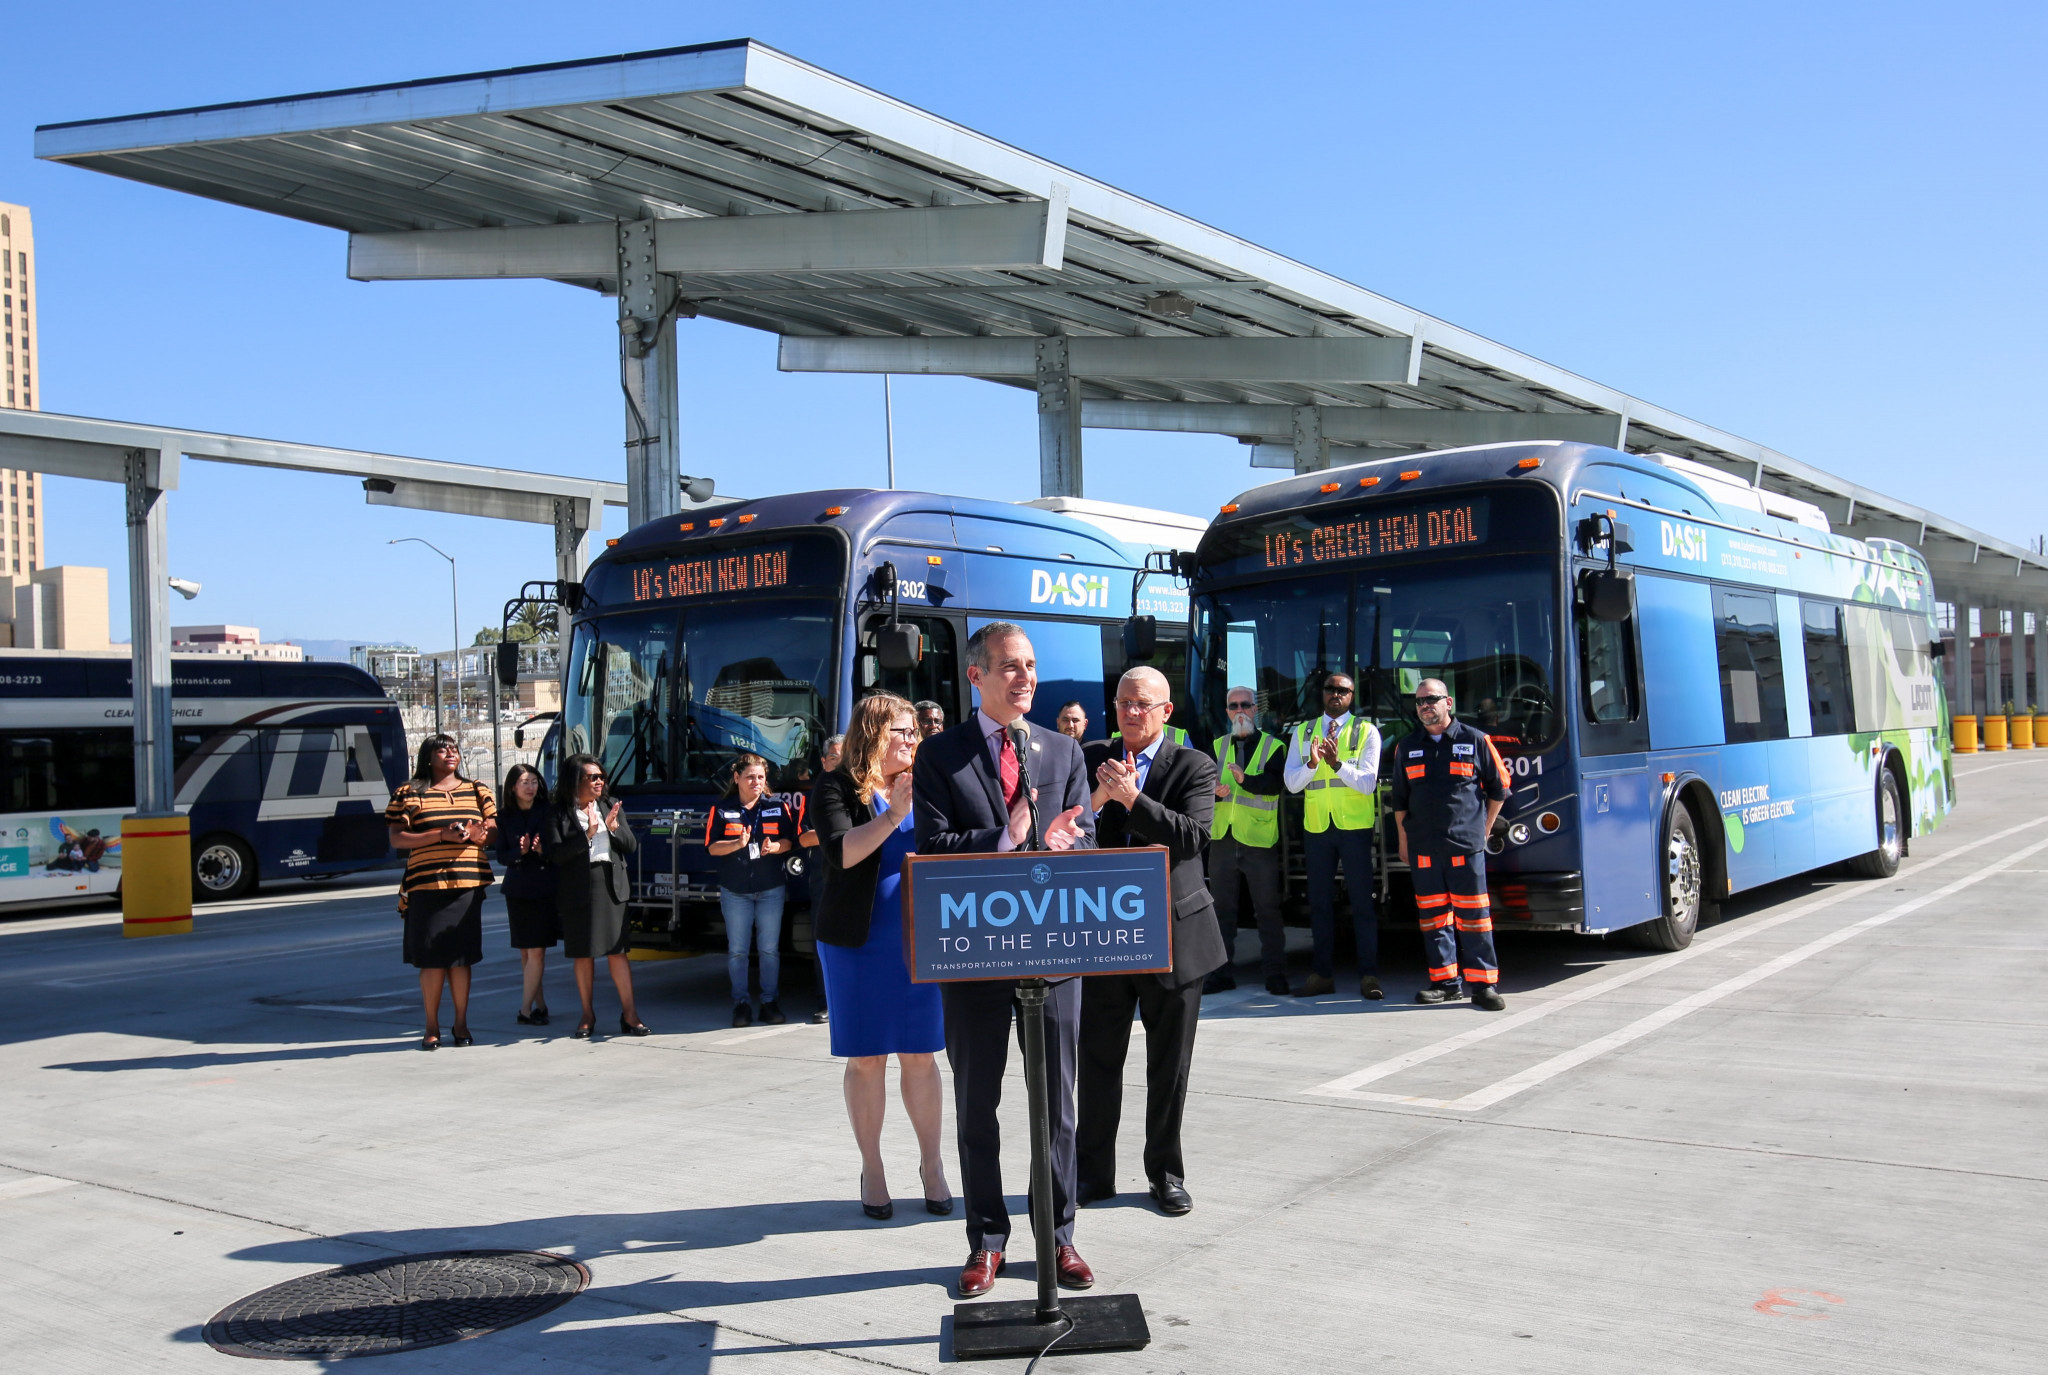 Los Angeles places largest order for electric buses in US history in time for 2028 Olympics